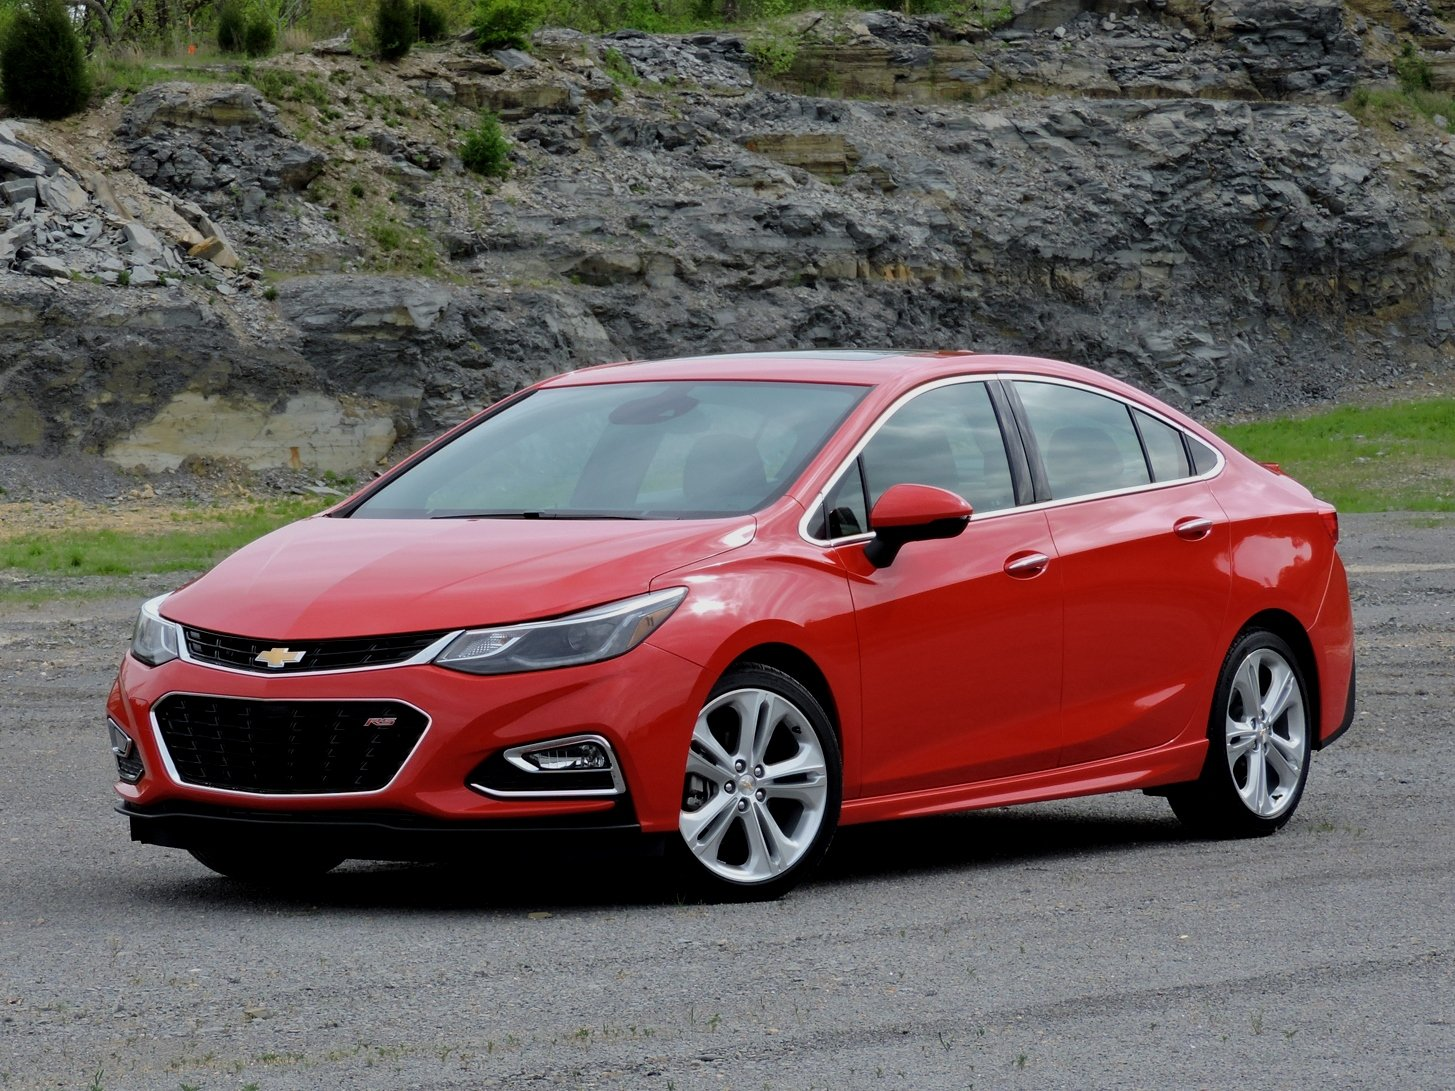 2016 Chevrolet Cruze Review - AutoGuide.com News